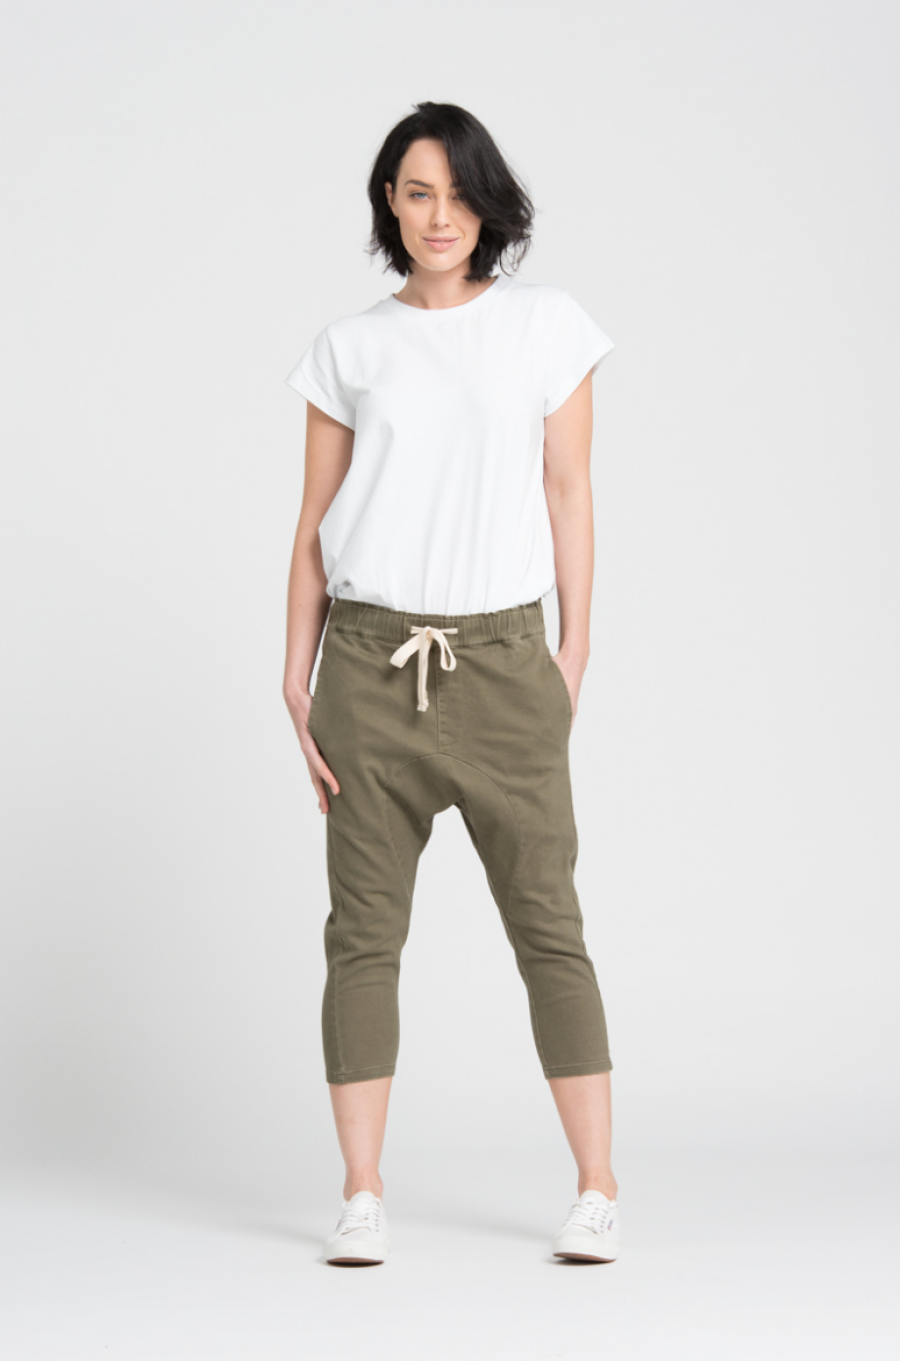 See Need Want Trend Alert Drop Crotch Pants Bohemian Traders Khaki